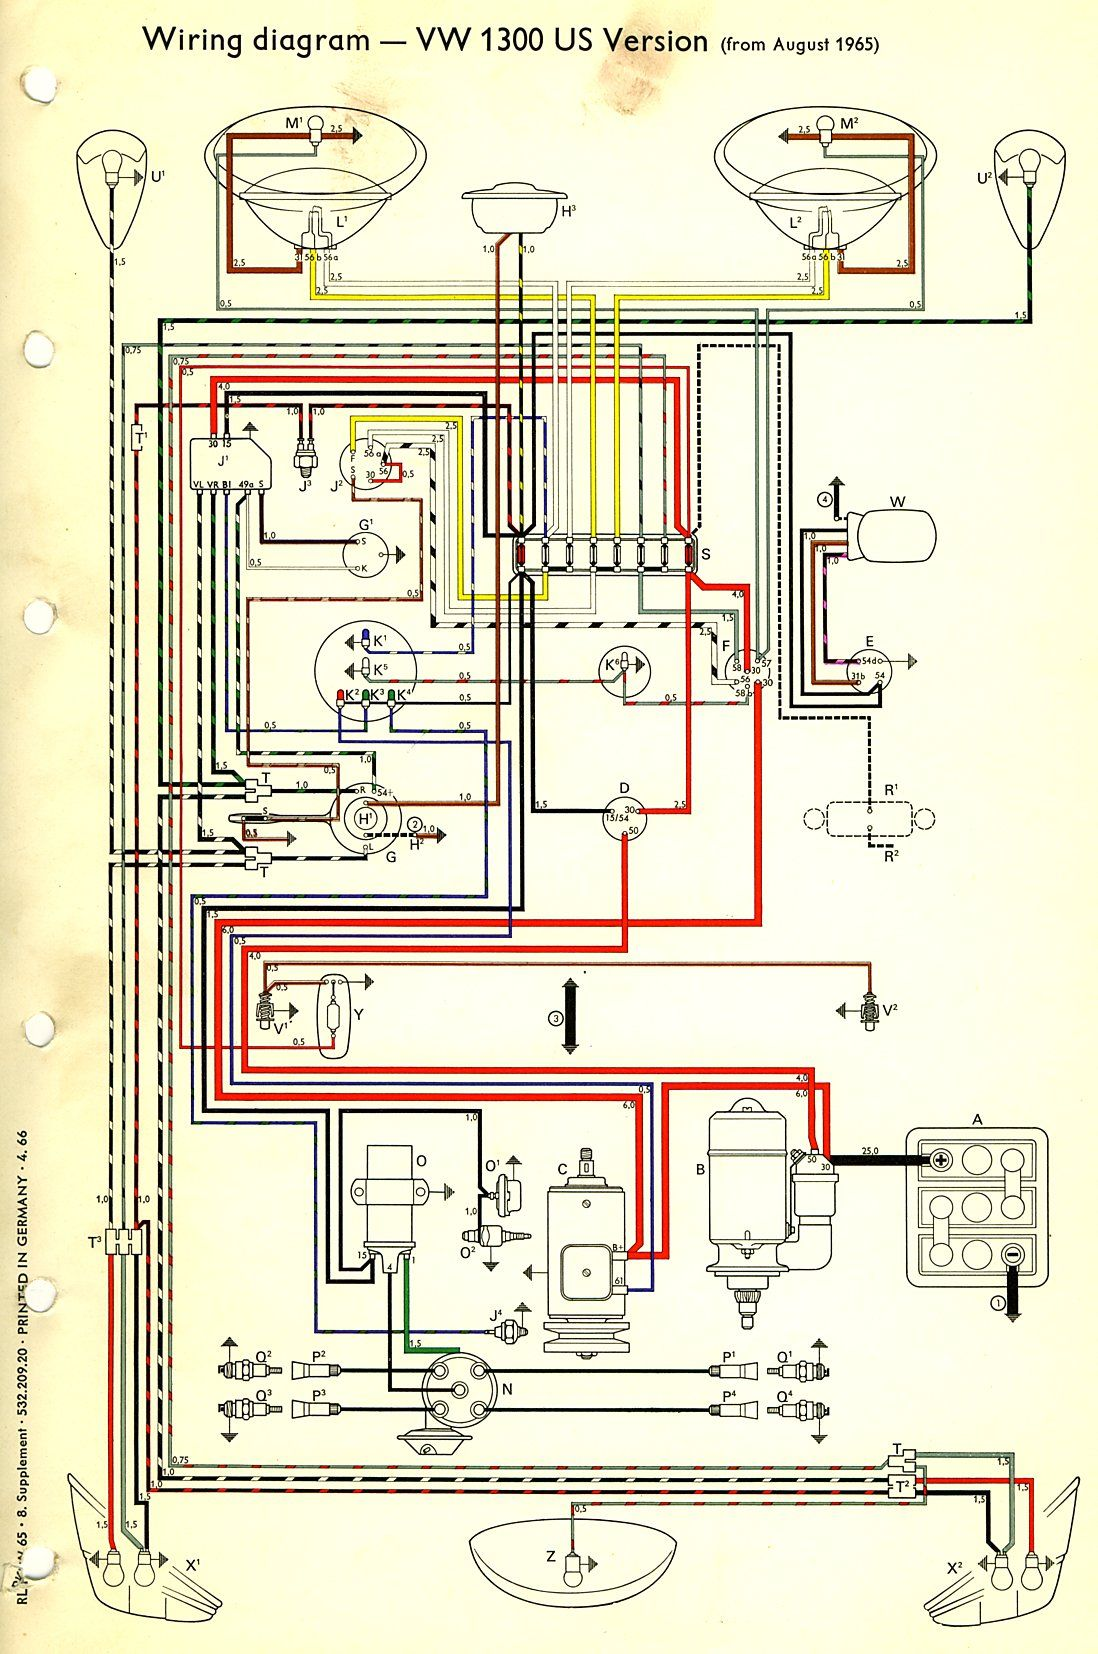 dune buggy wiring schematic google search 69 bug or 69 dune bad boy buggy wiring schematic pdf buggy wiring schematic [ 1098 x 1654 Pixel ]